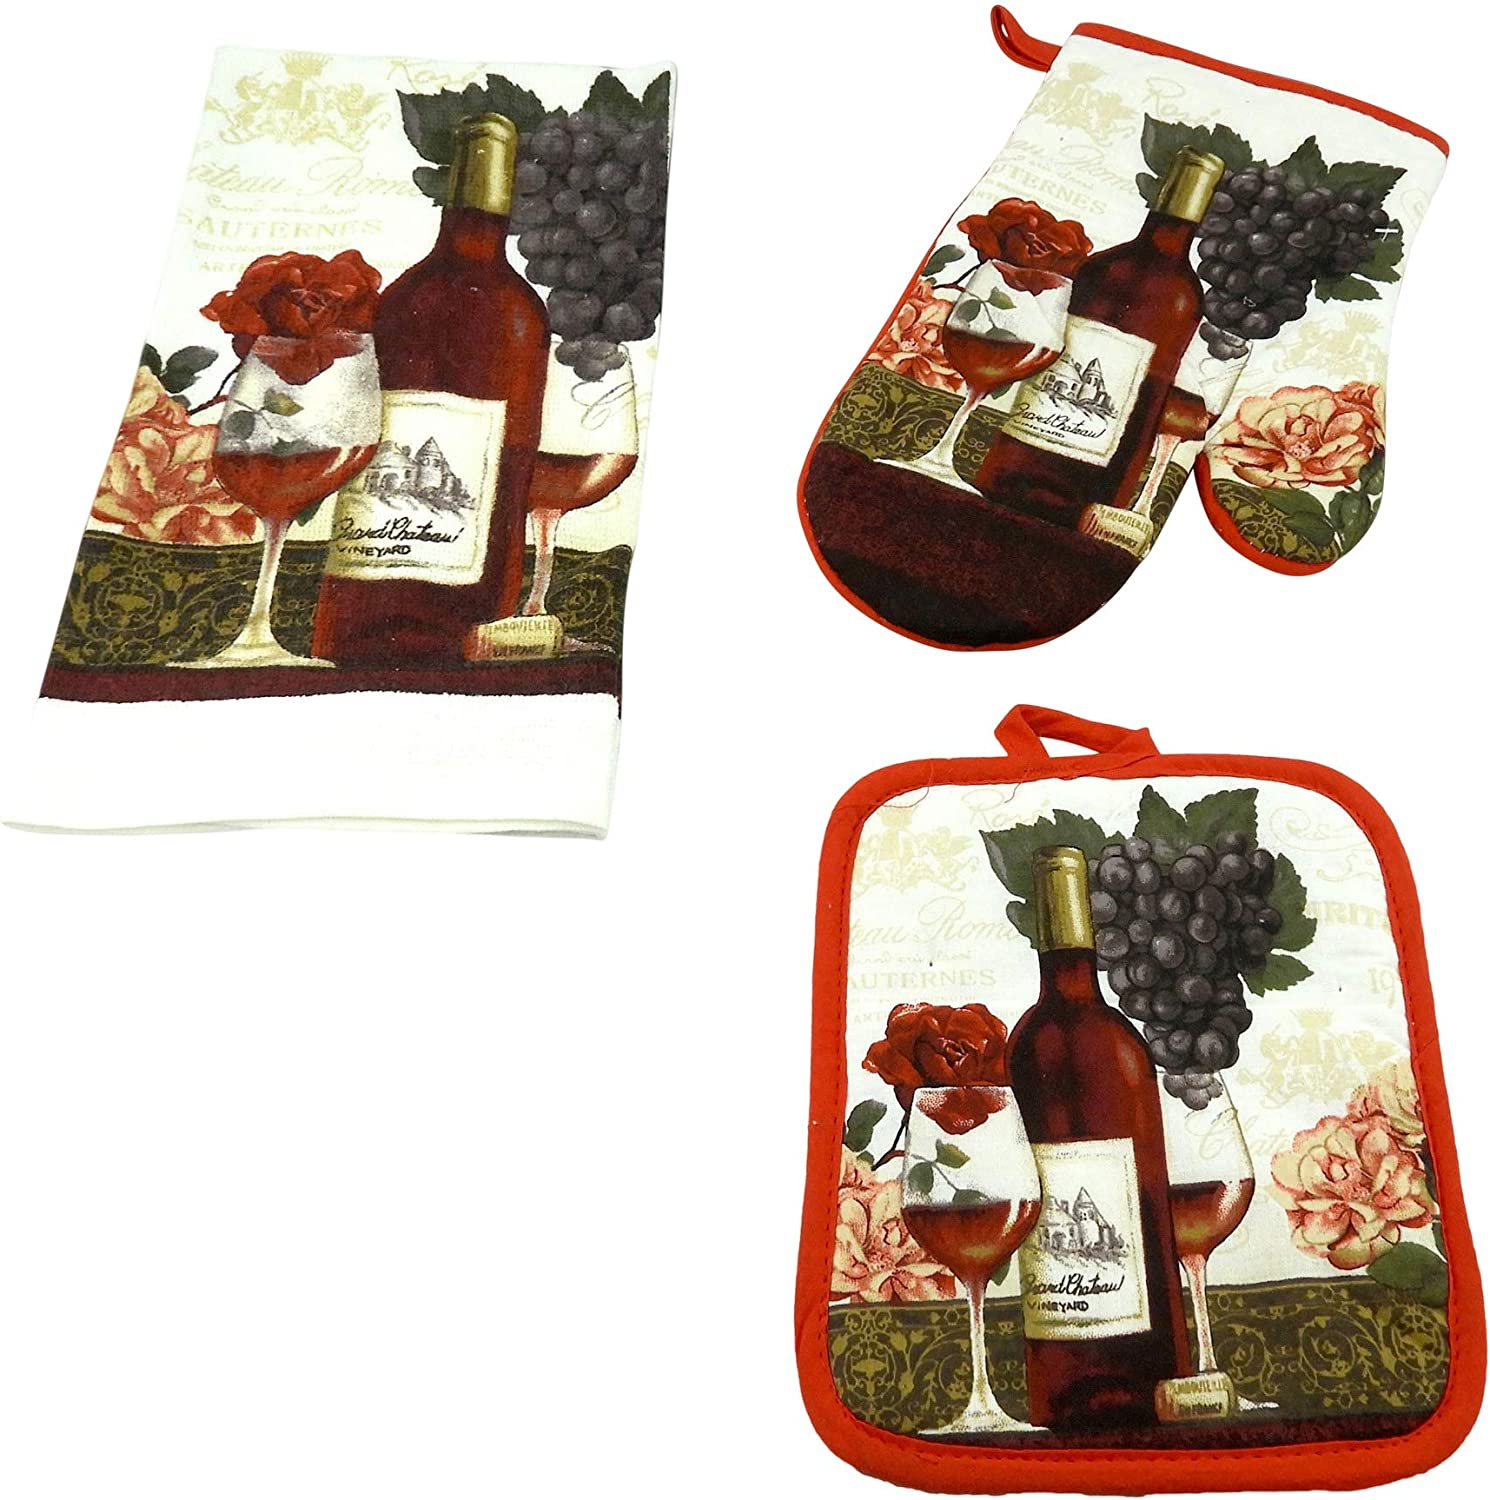 DINY Home & Style 3 Piece Kitchen Set Includes Towel Pot Holder & Oven Mitt Grapes & Wine Bottle Design